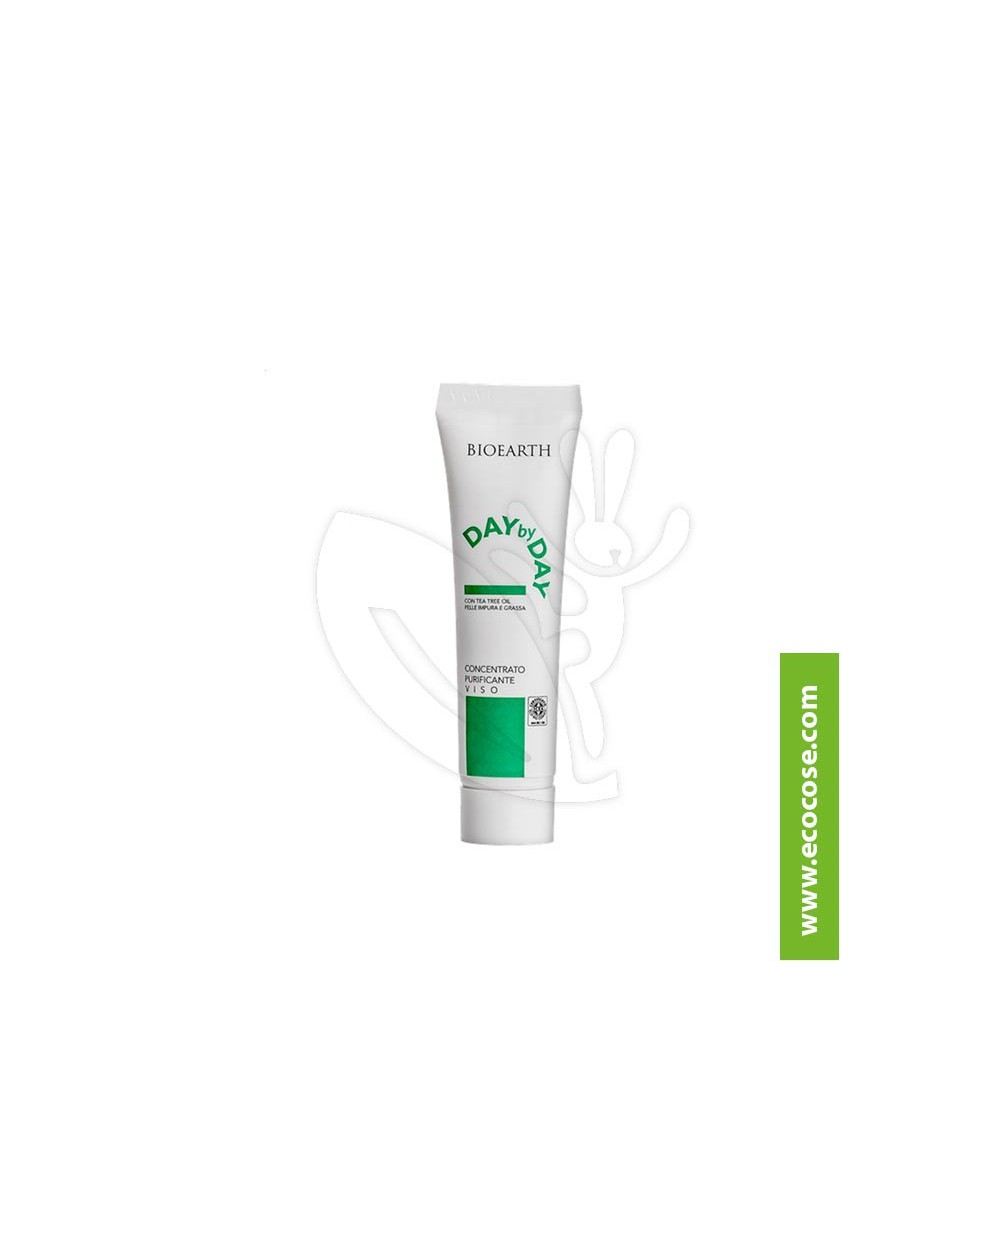 Bioearth Day by Day - Concentrato purificante viso